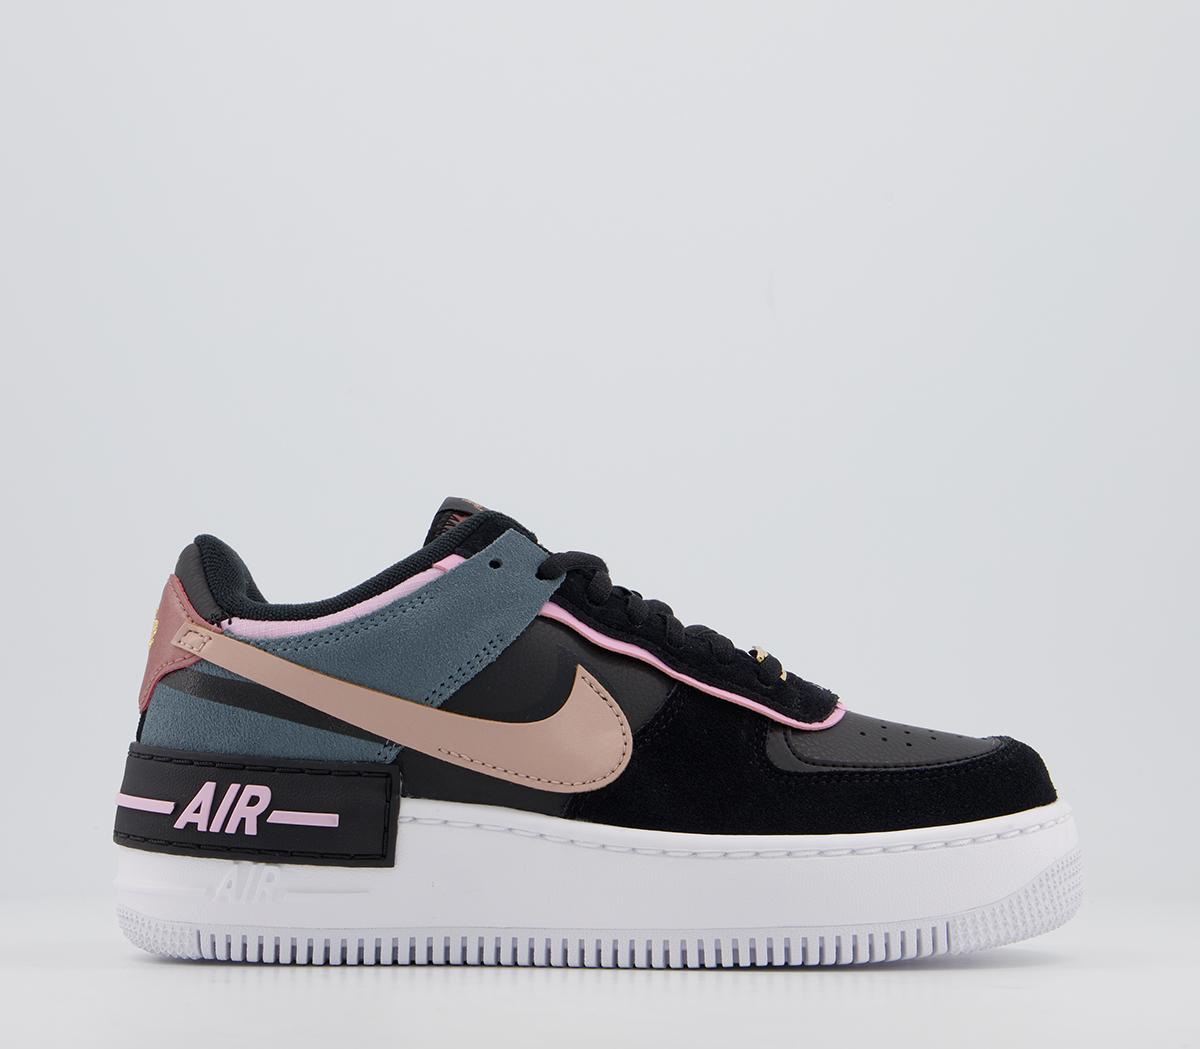 Nike Air Force 1 Shadow Trainers Black Metallic Red Bronze Light Artic Pink Hers Trainers Chunky foam sole with signature air cushioning. air force 1 shadow trainers